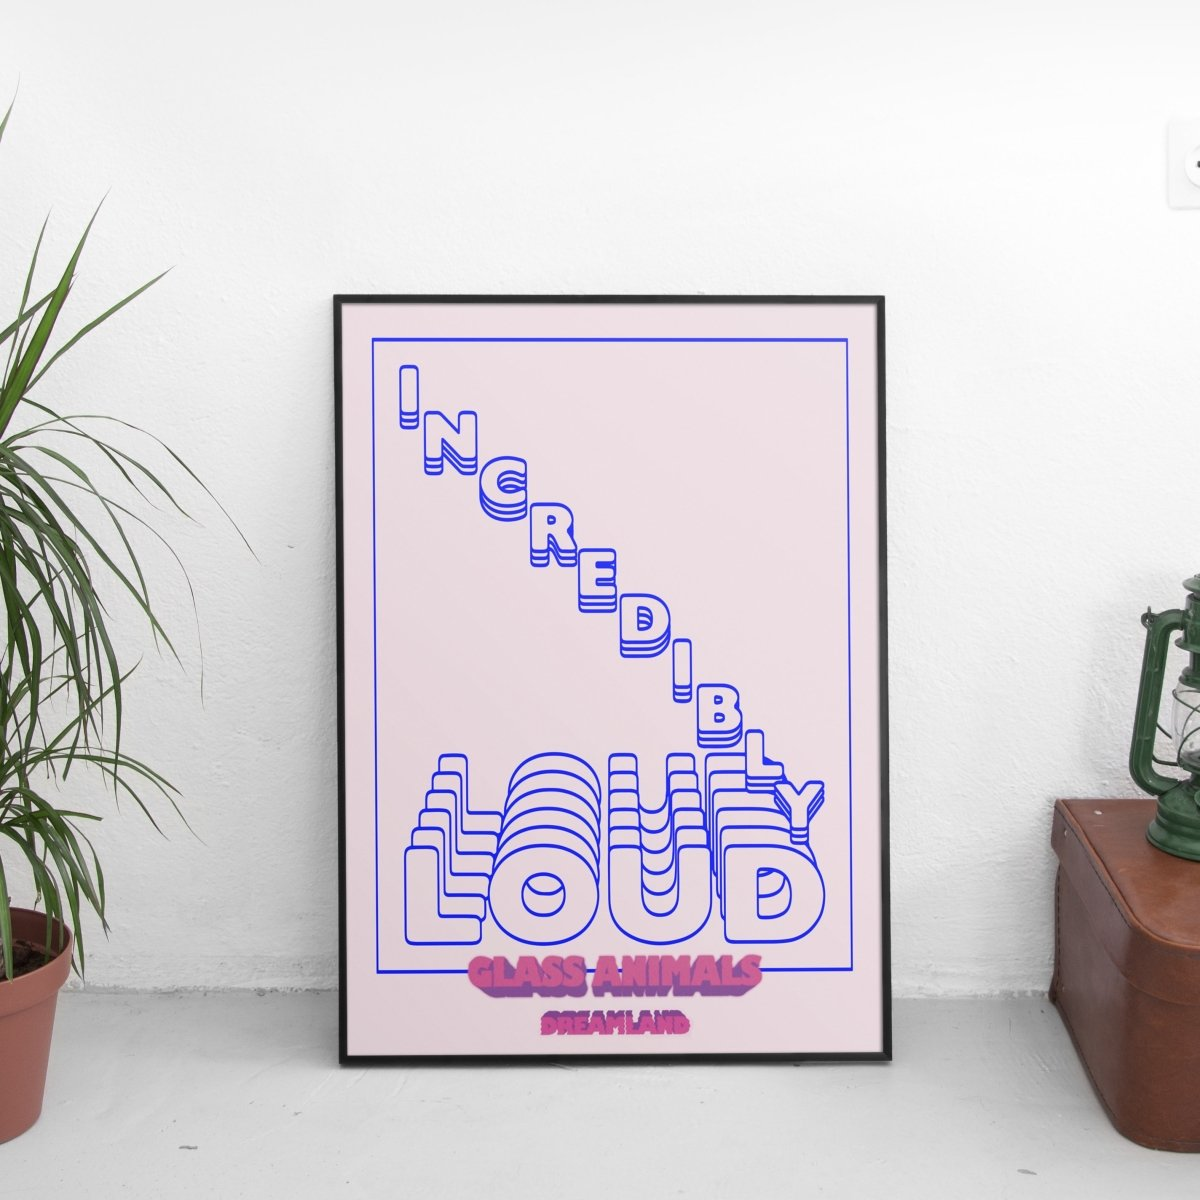 Glass Animals - Incredibly Loud (Dreamland) Poster